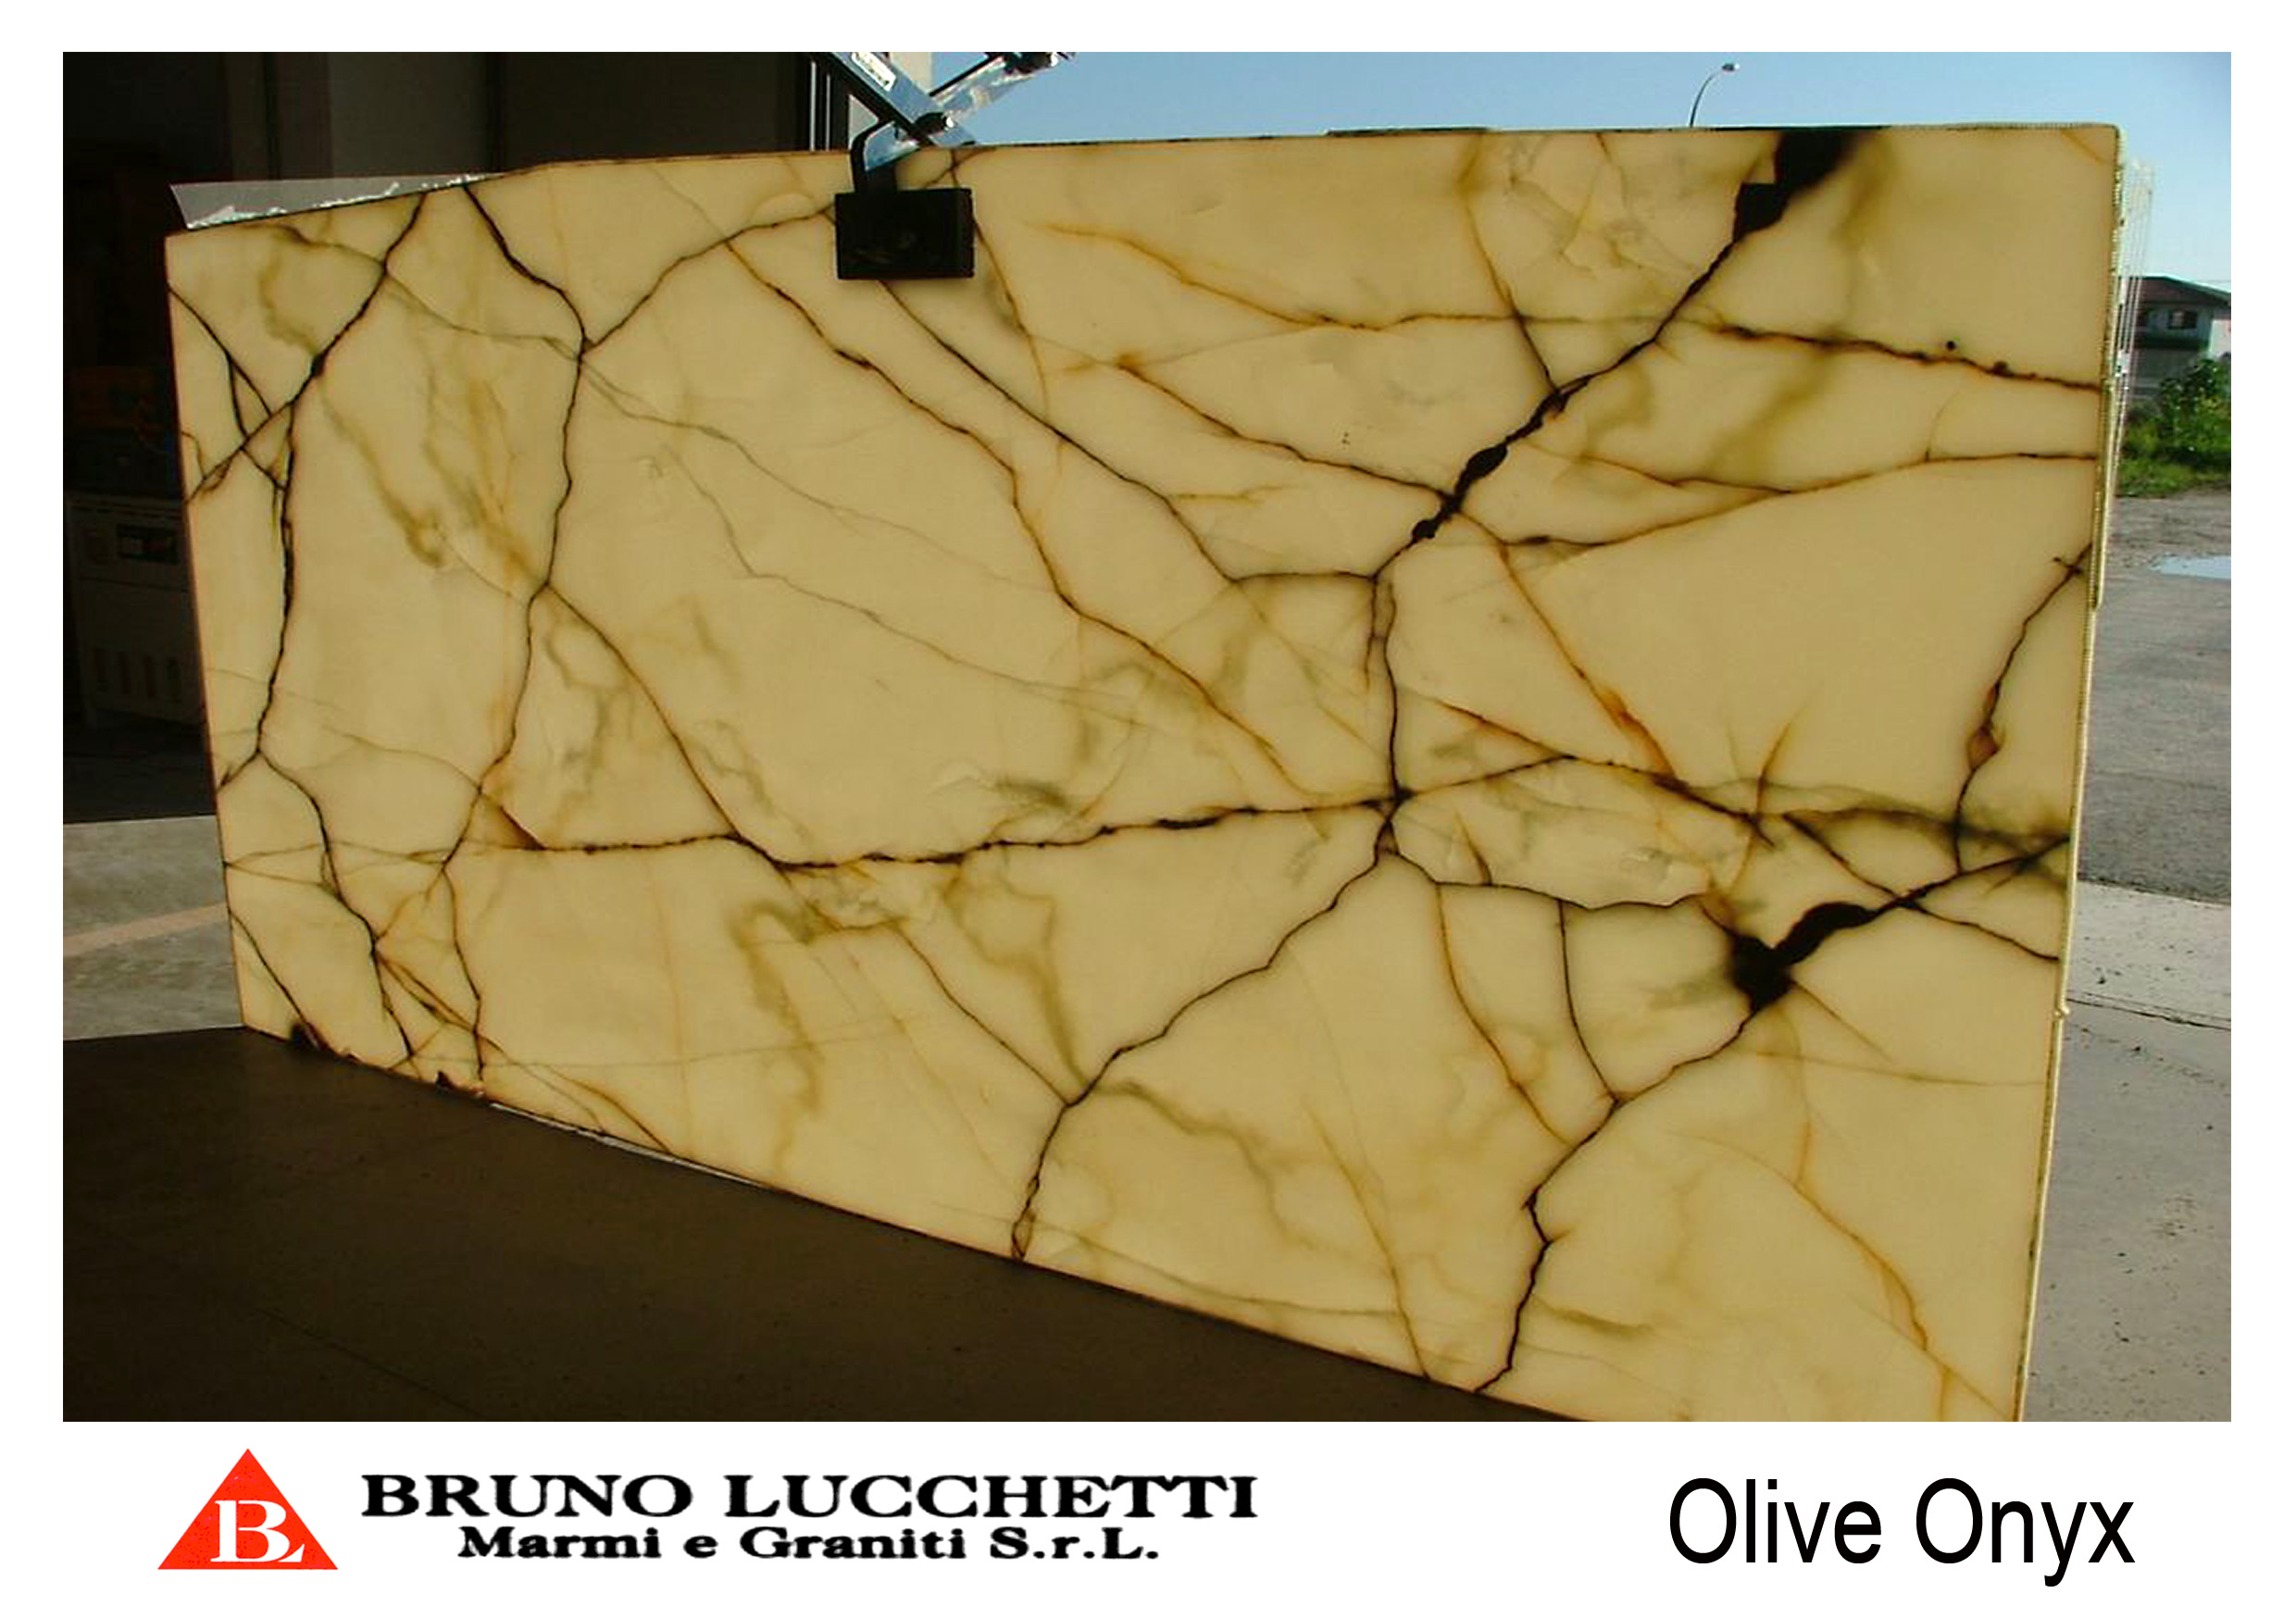 Lighting Behind Onyx Marbles : Onyx olive biography